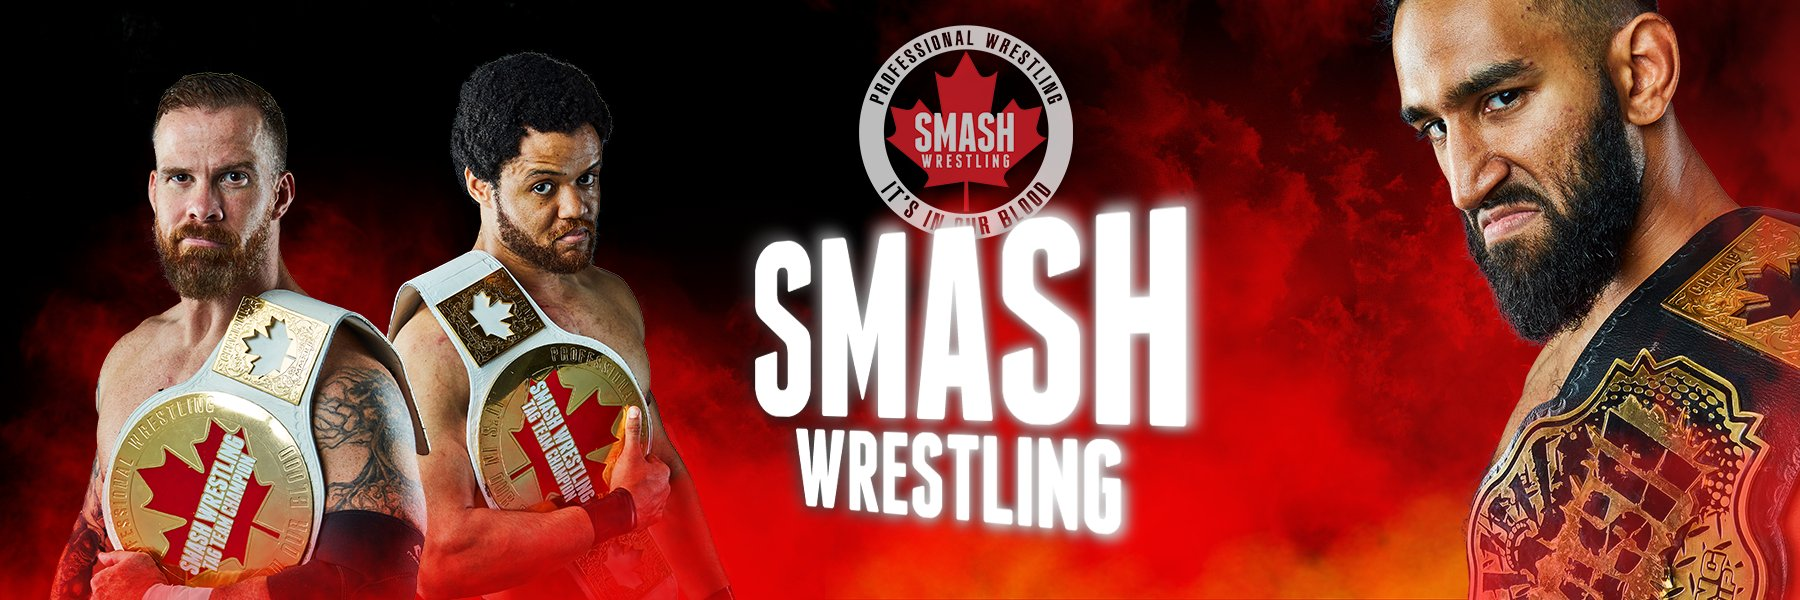 Every Episode of Smash Wrestling on Fight Network